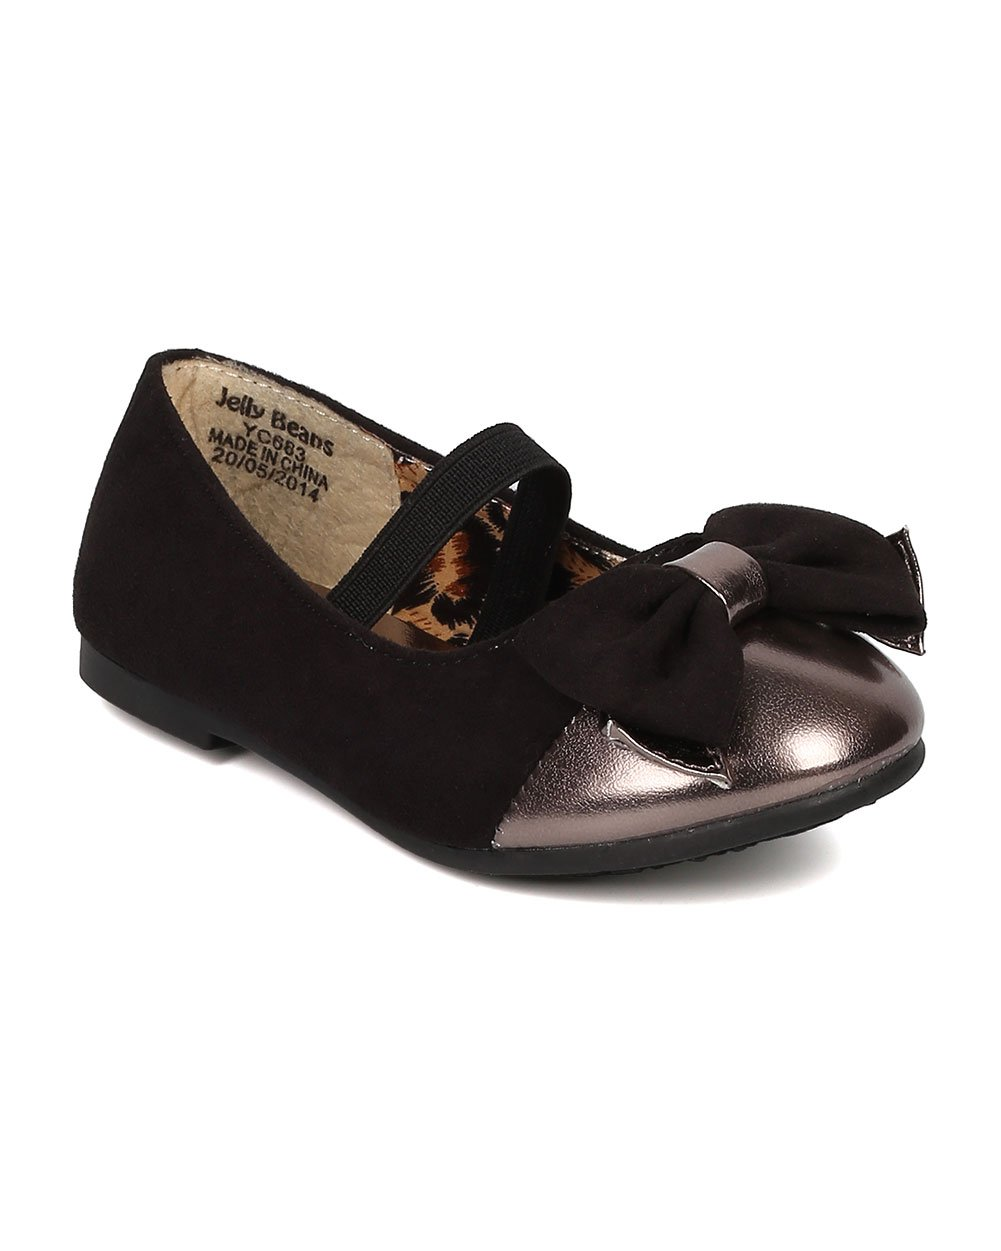 JELLY BEANS Saroya Gold Cap Round Toe Ballet Flat Bow Elastic Mary Jane (Toddler) AC85 - Black Faux Suede (Size: Toddler 4)